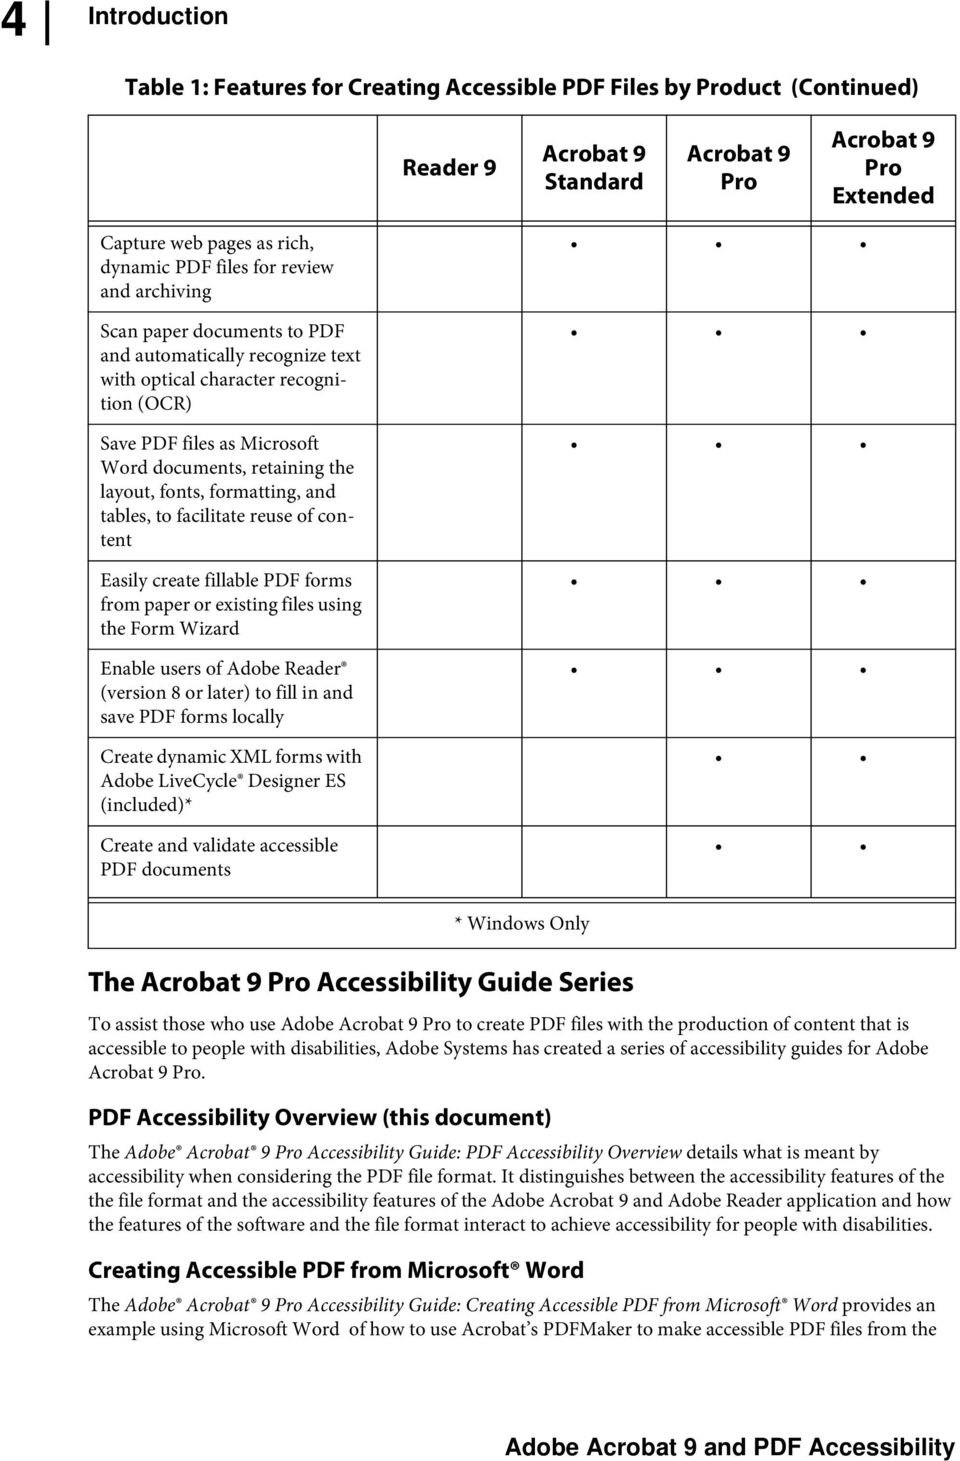 Adobe Acrobat 9 Pro Accessibility Guide: PDF Accessibility Overview